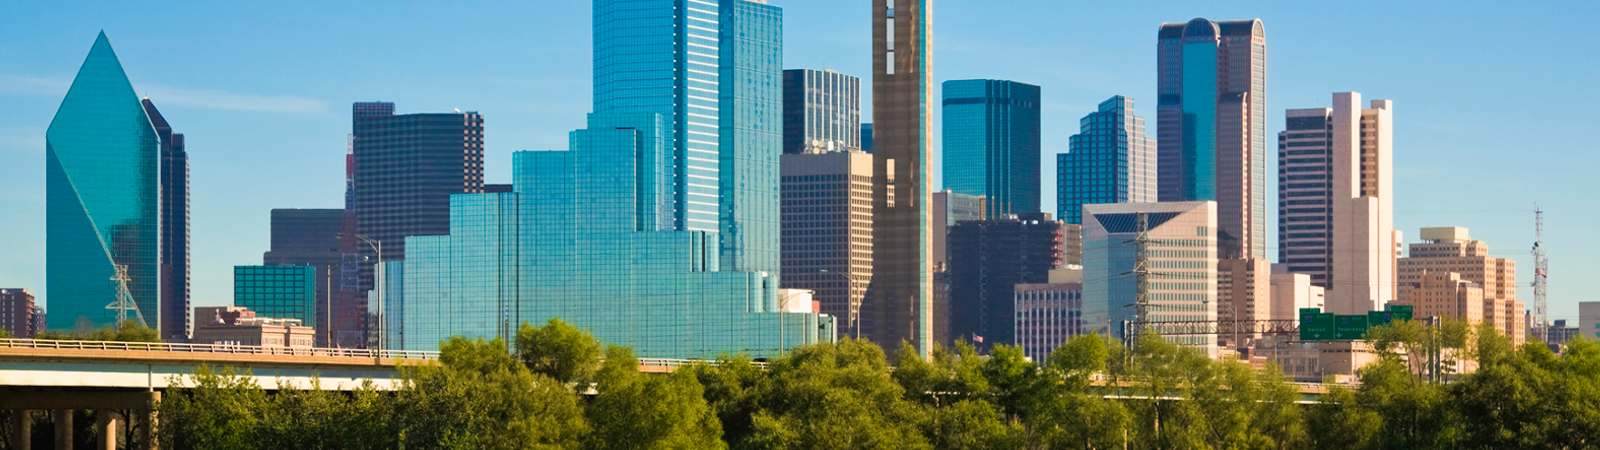 Thrifty Car Rentals >> Hire Comfortable Rental Cars at Dallas Love Field Airport